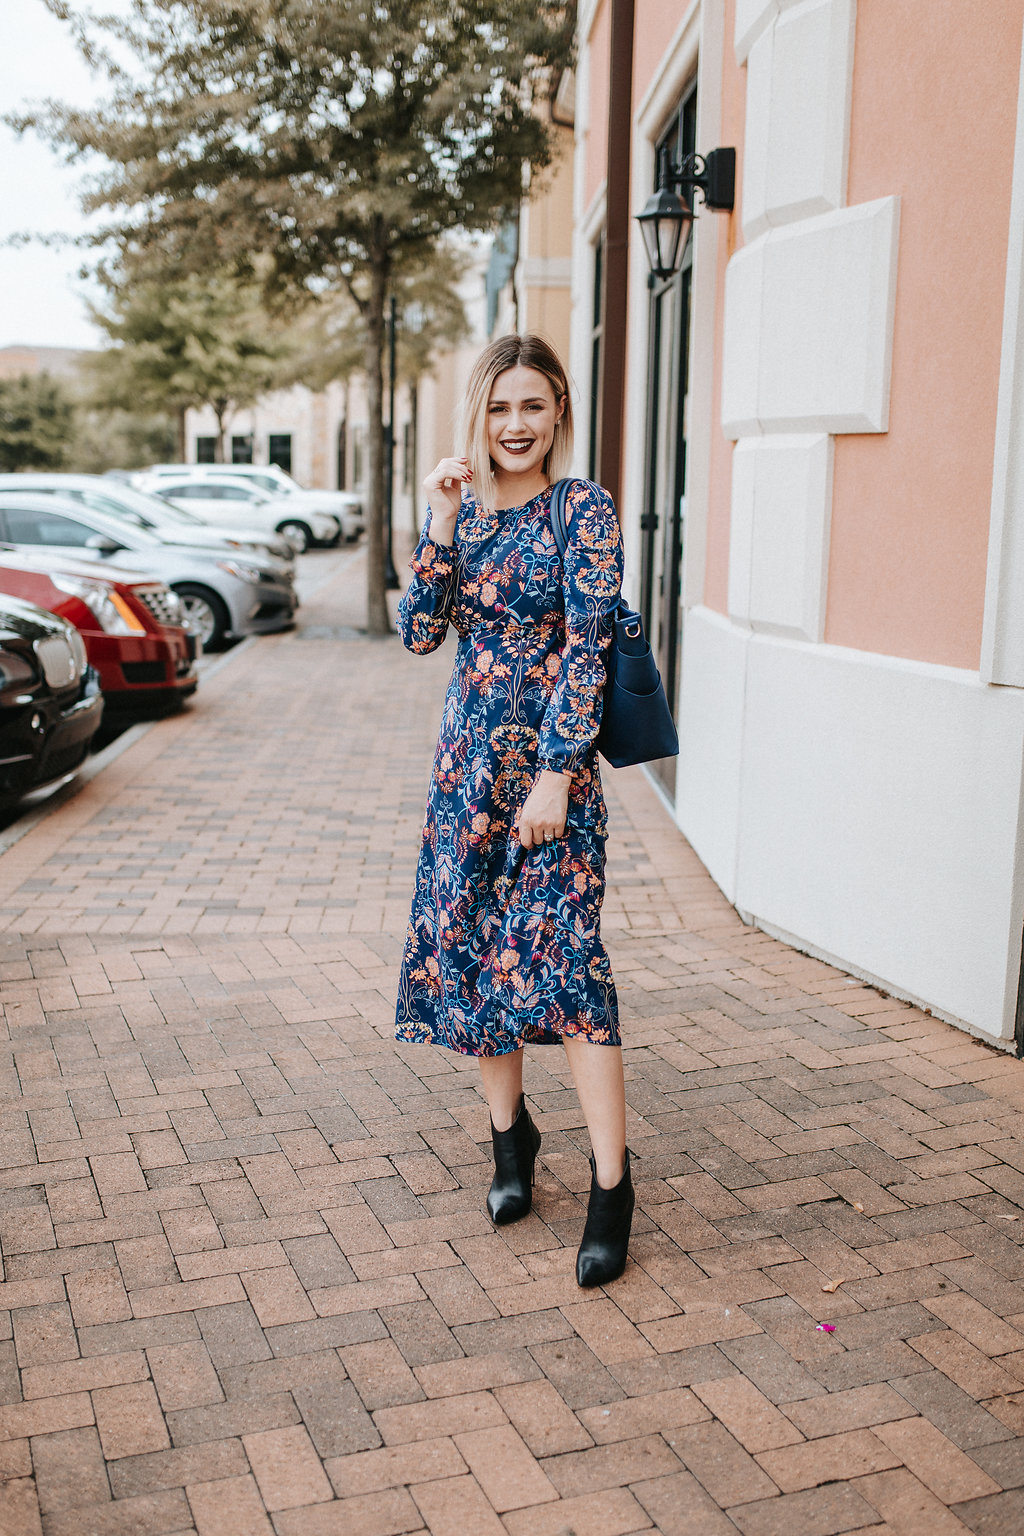 Housont fashion blogger Uptown with Elly Brown wears a blue floral dress from Lulu's for under $75!